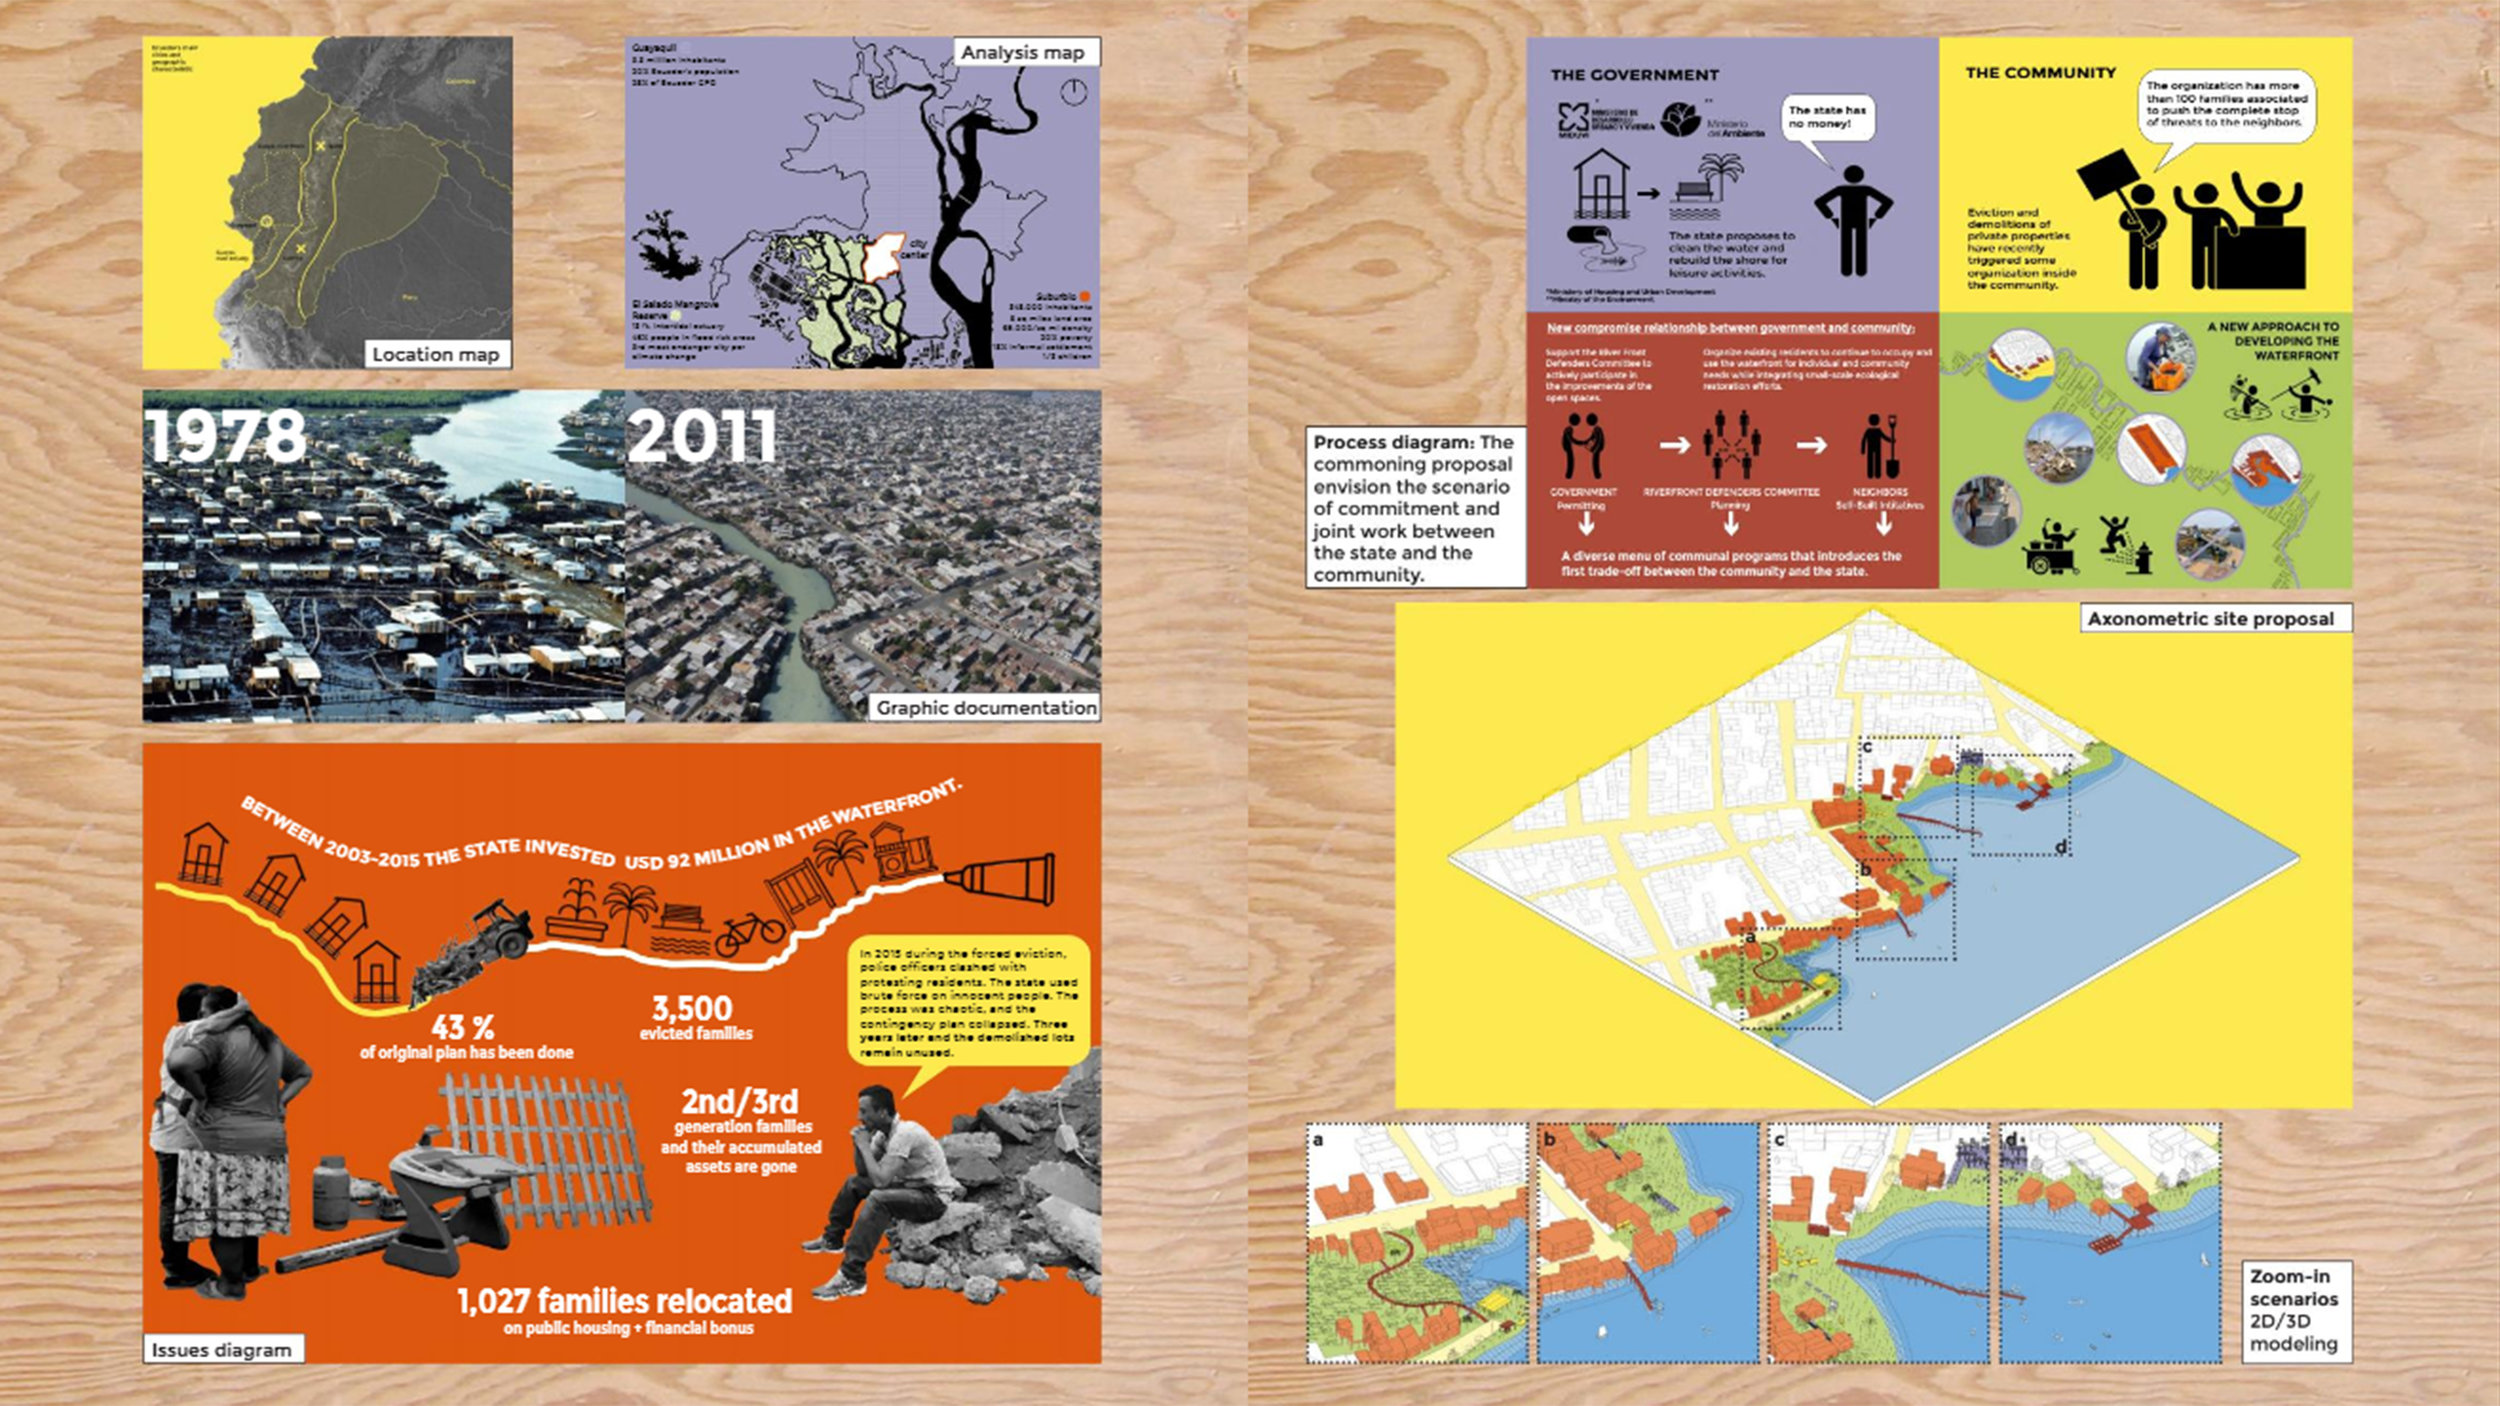 11_MUD_EXP_Paul Moscoso Rifrio Thesis_S19.jpg